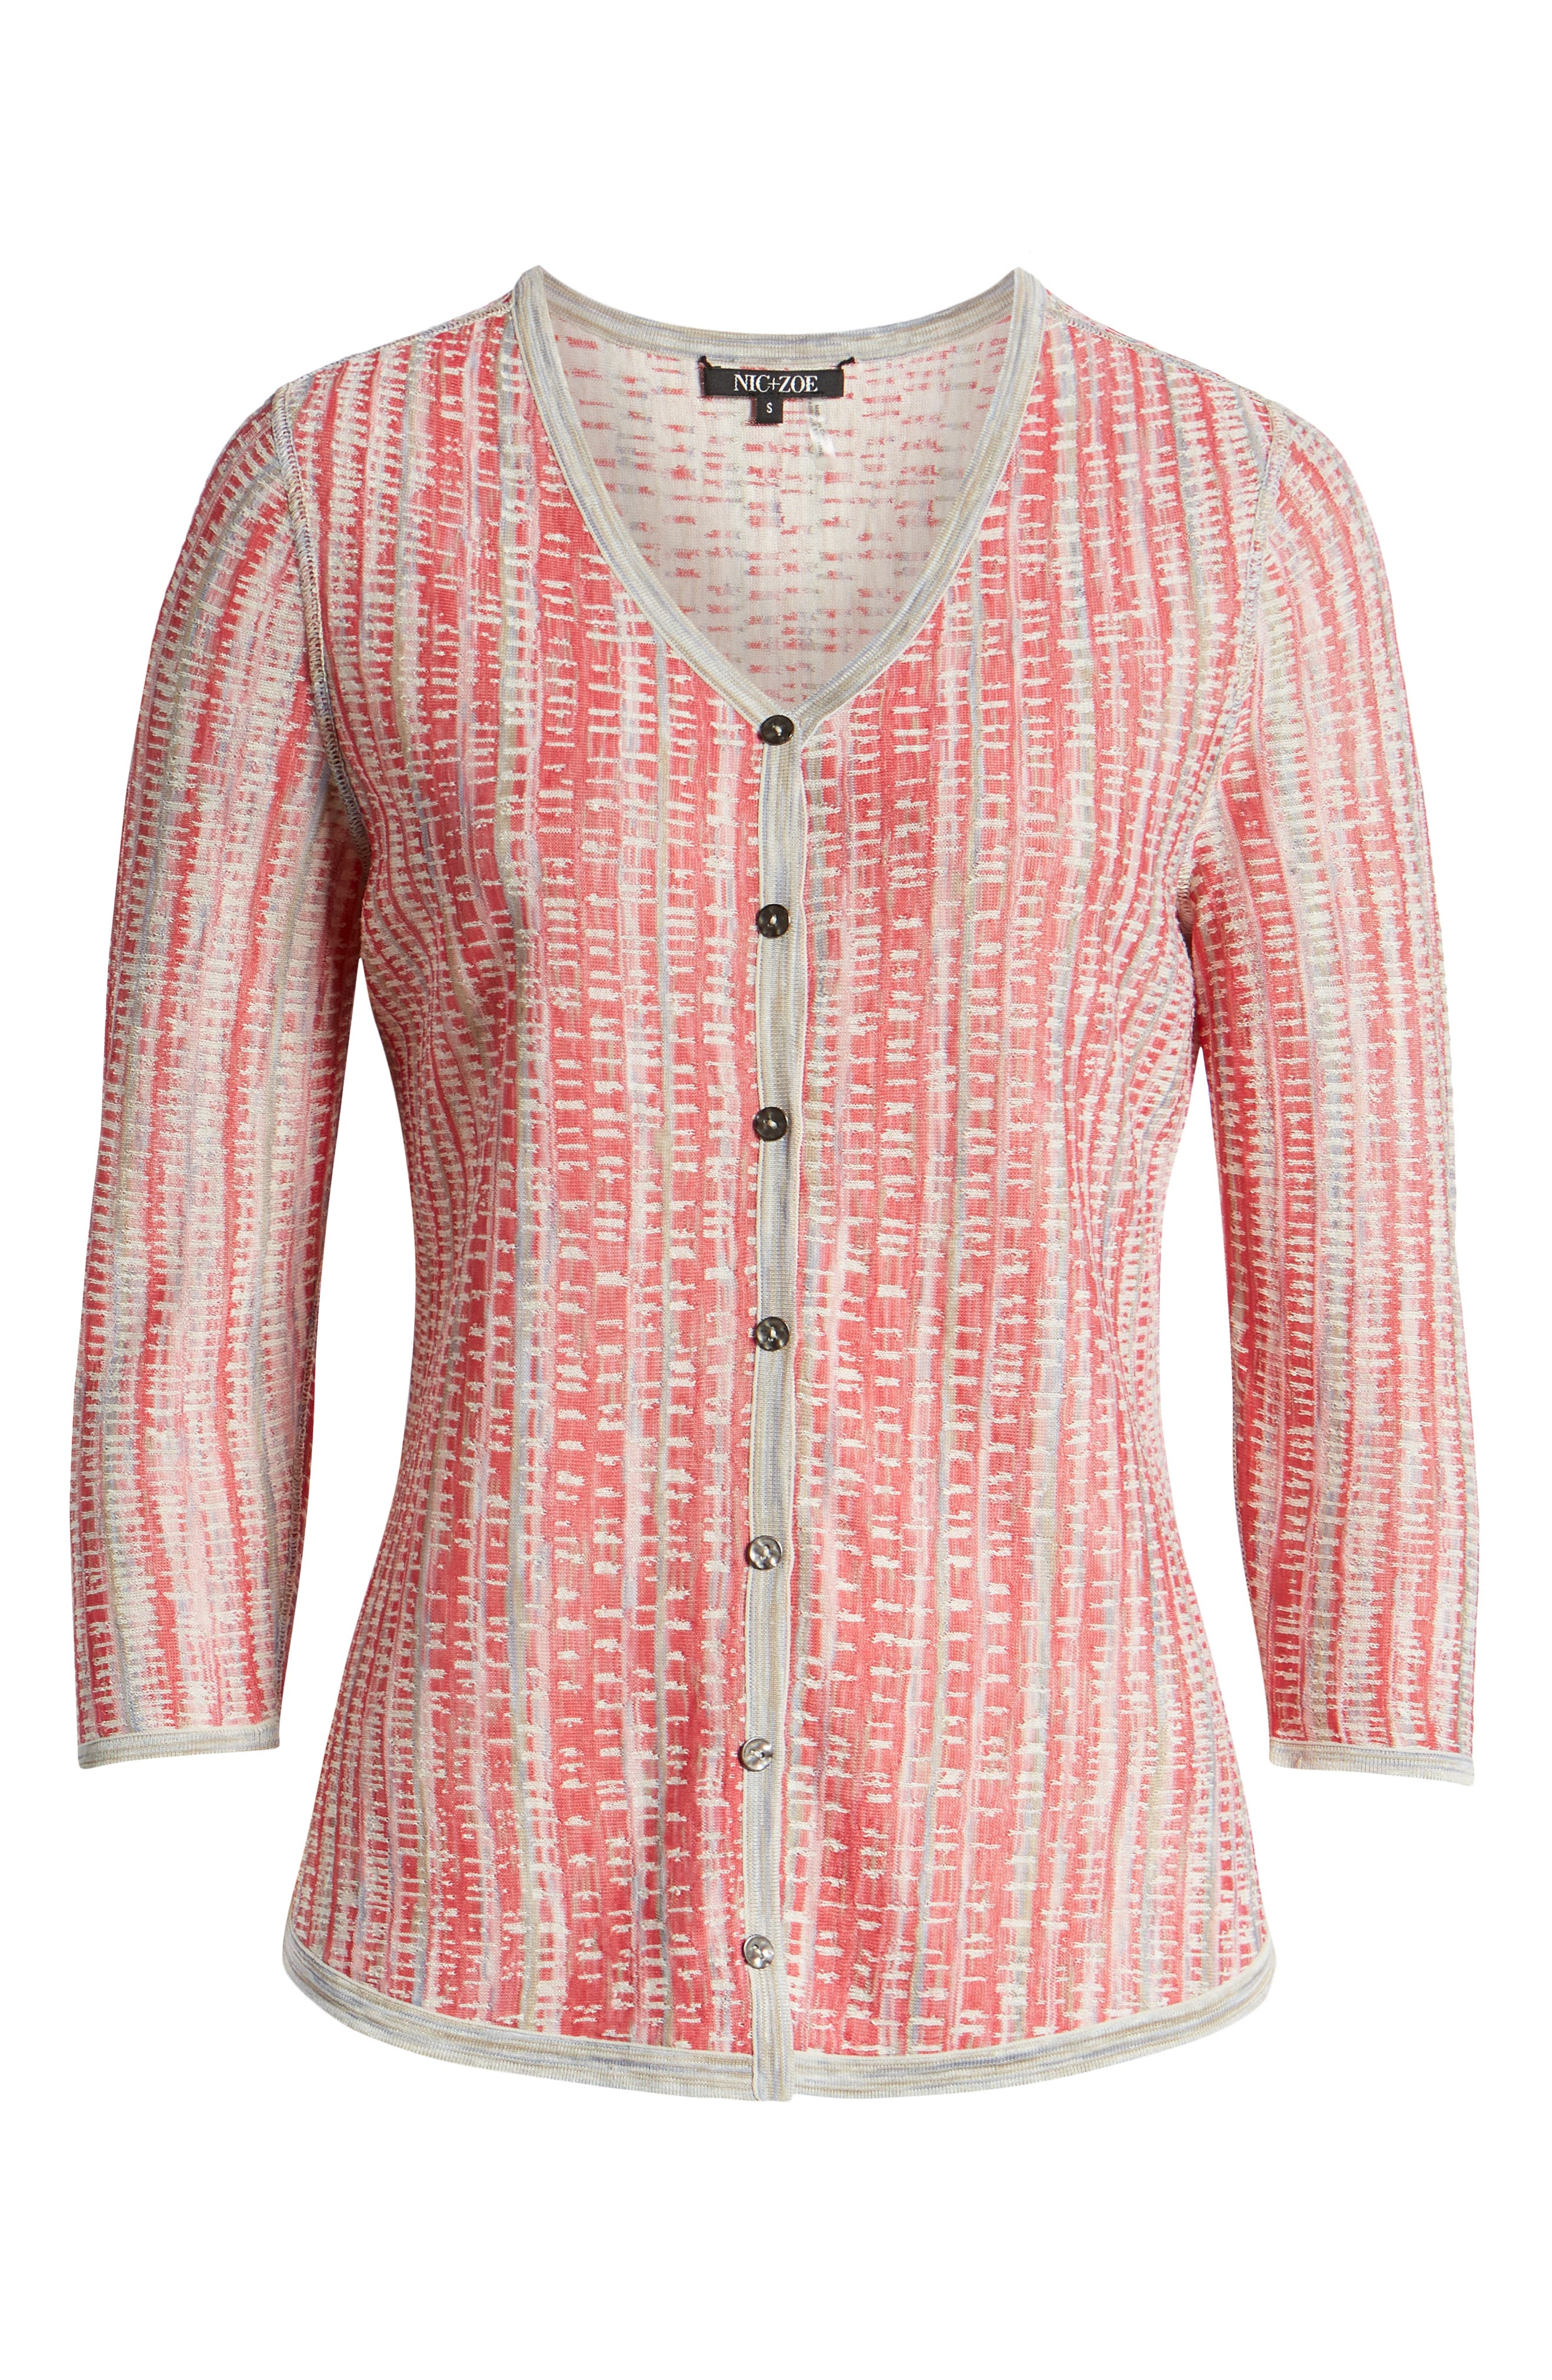 NIC+ZOE, Tubular Sunset Cardigan, Alternate thumbnail 7, color, MULTI